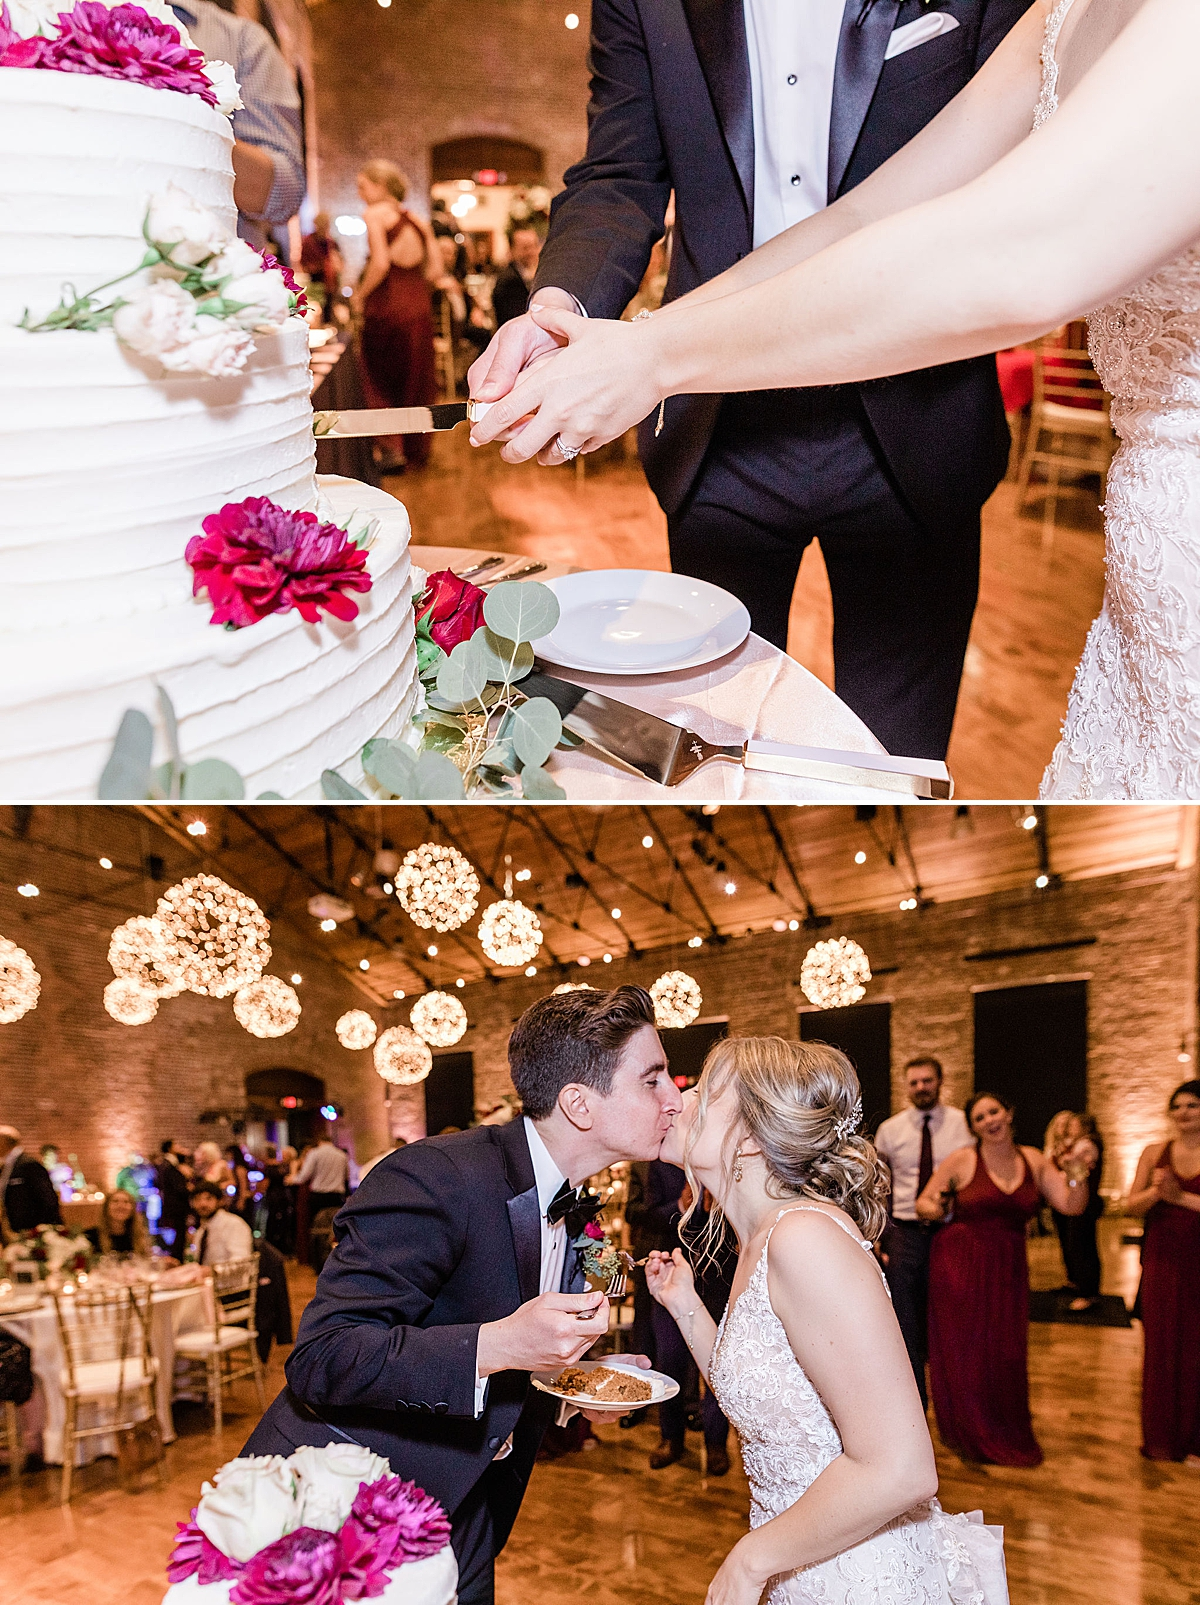 Cake cutting at Kate and Anthony's Historic Savannah Wedding - Apt B Photography